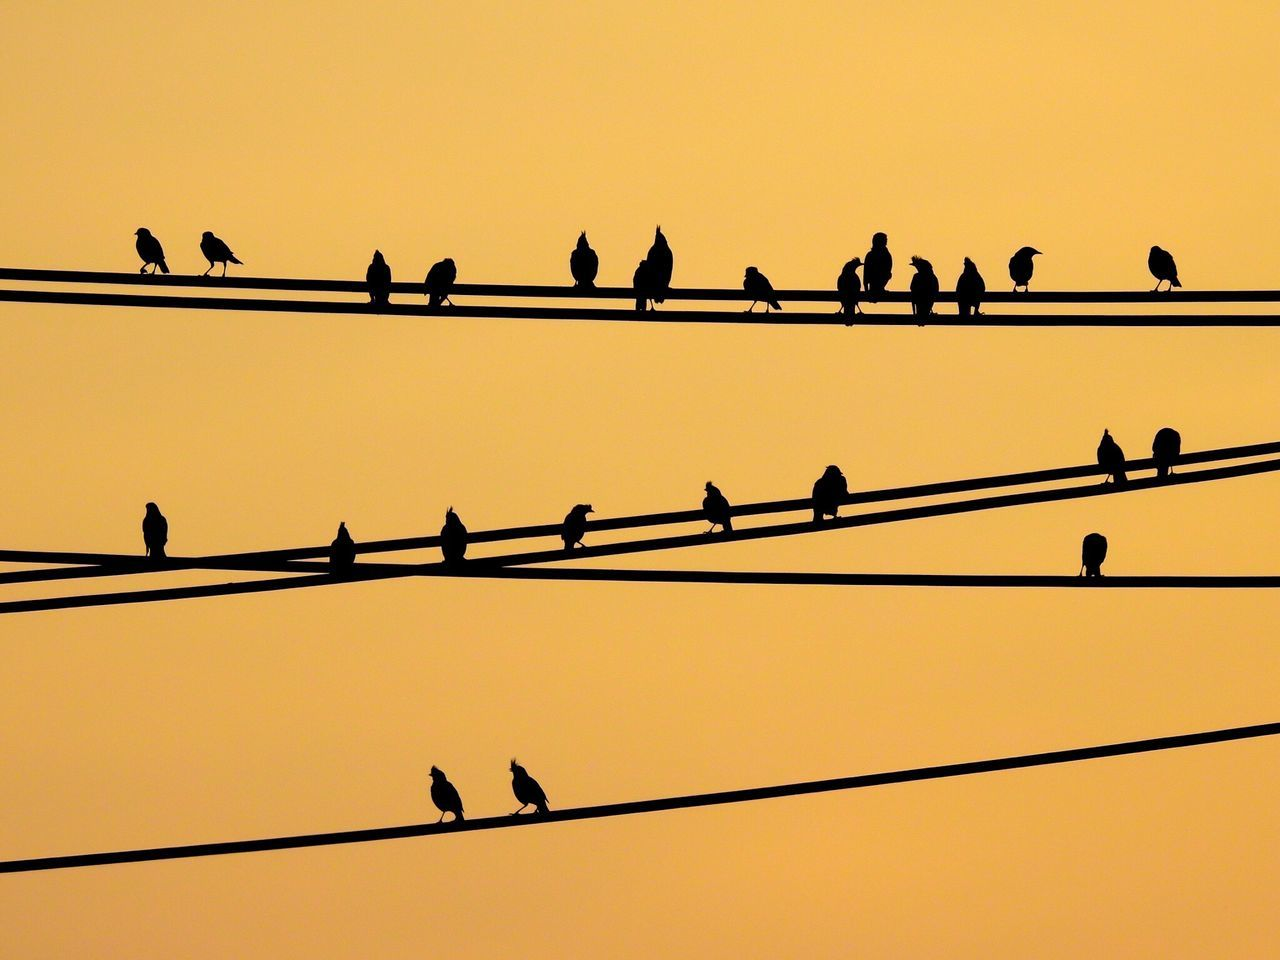 Bird Clear Sky Animals In The Wild Animal Themes Sunset Silhouette Low Angle View Perching Animal Wildlife No People Outdoors Nature Day Sky Birds Birds_collection Animal Animals Animals In The Wild Bird On A Wire Wire Silhouette